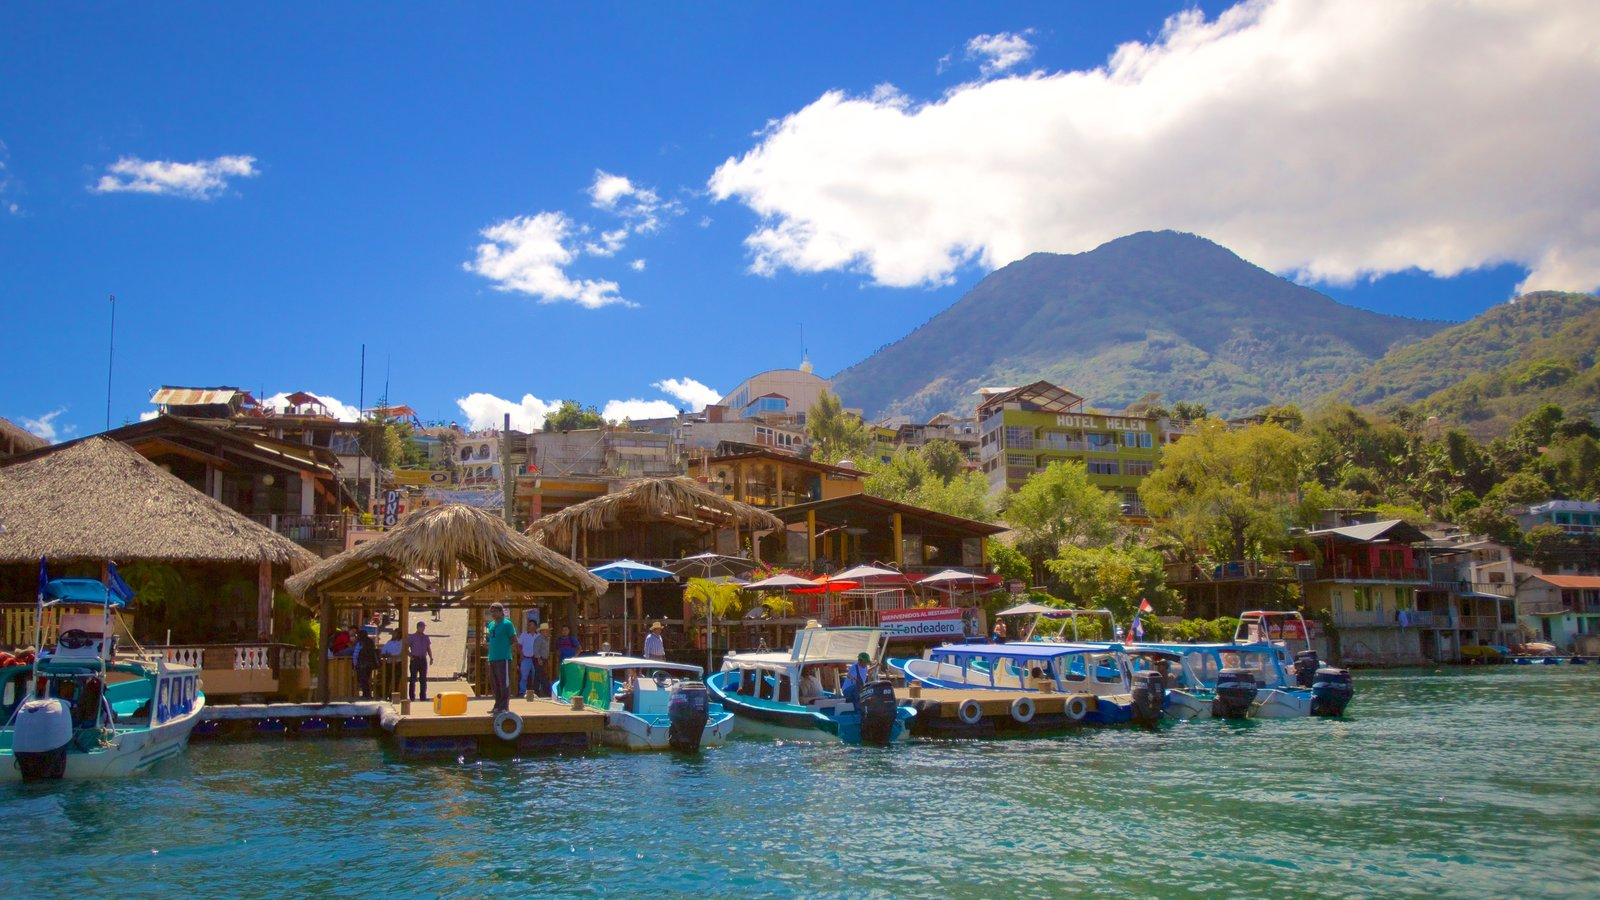 San Pedro La Laguna which includes general coastal views and a coastal town